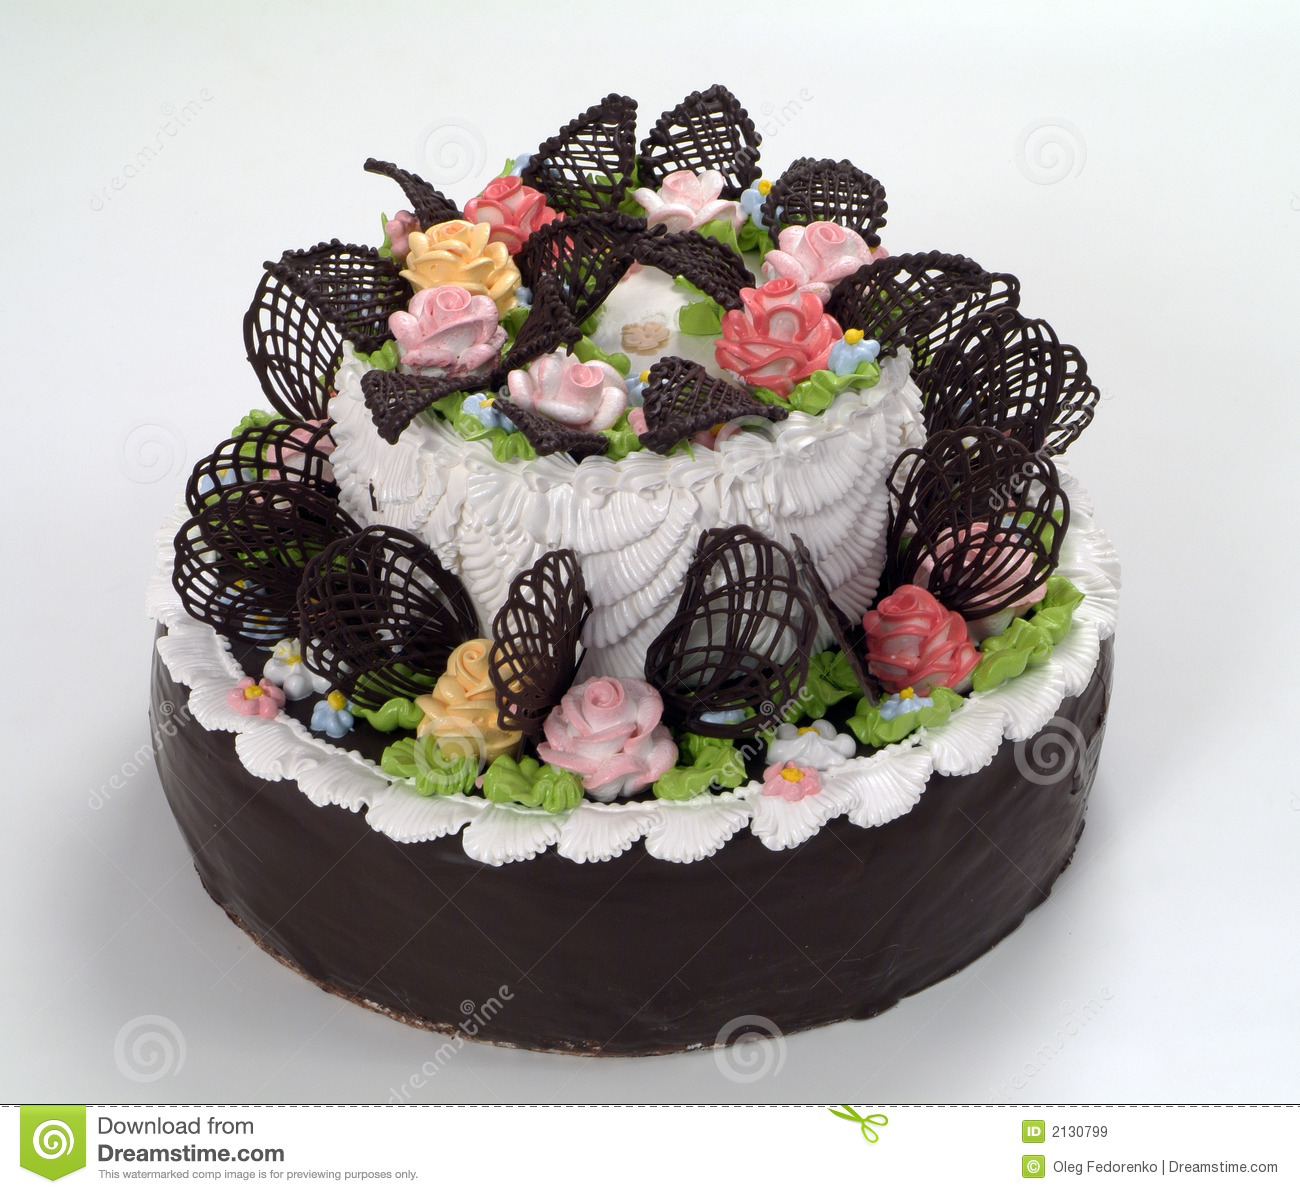 Pastries Cake Tasty Sweet Stock Image Image Of